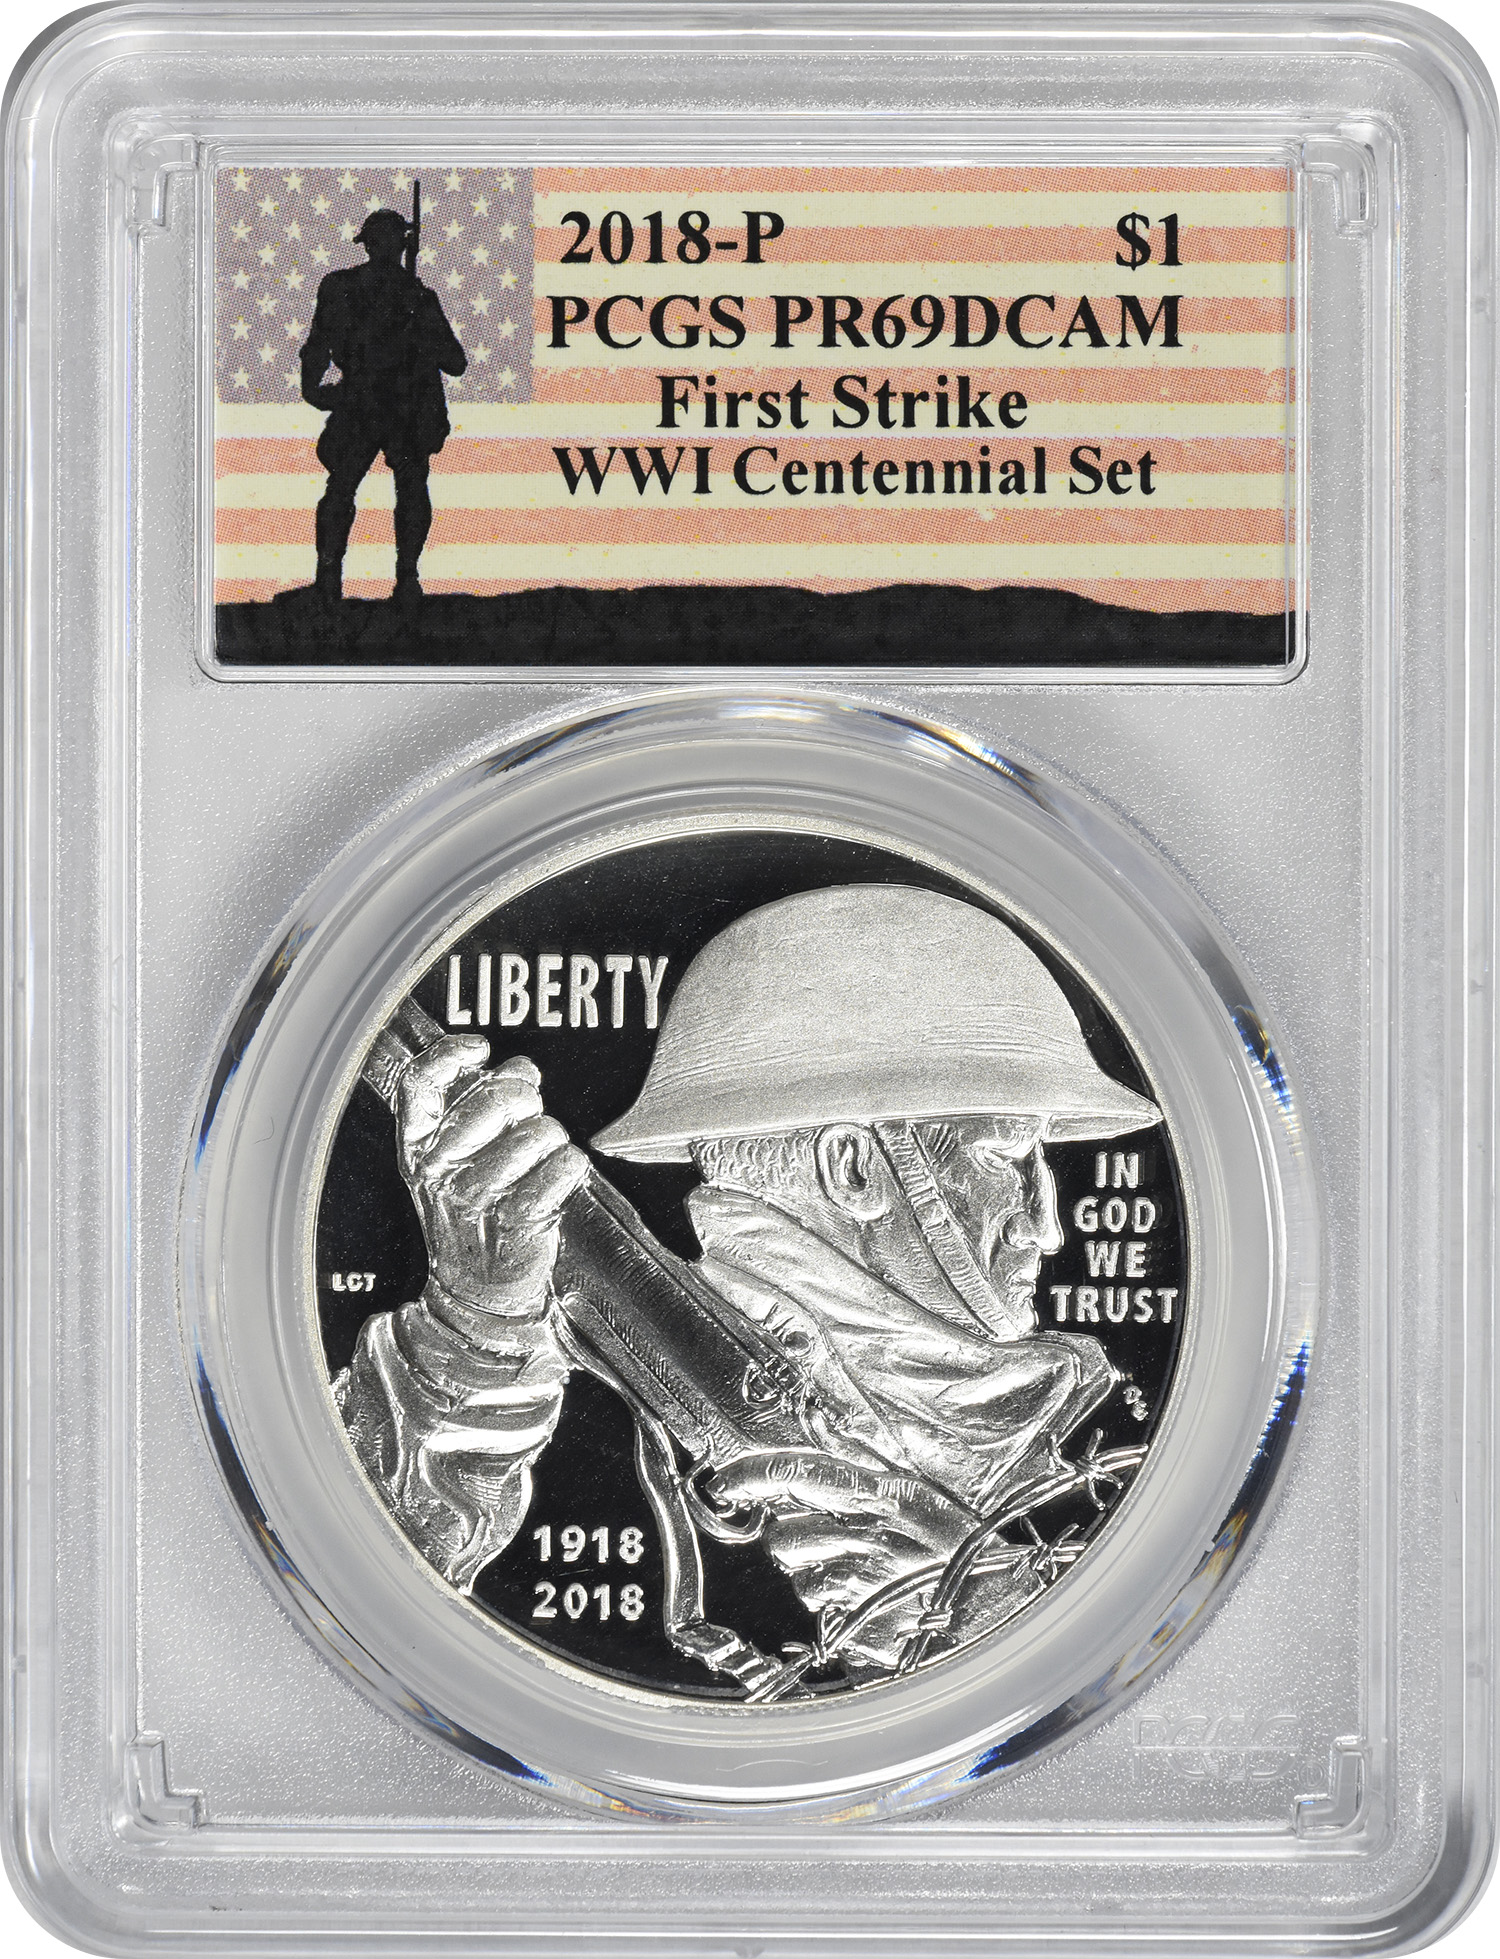 2018-P WWI Centennial Silver Commemorative Dollar (From Medal Set), PR69DCAM, First Strike, PCGS (WWI Label)